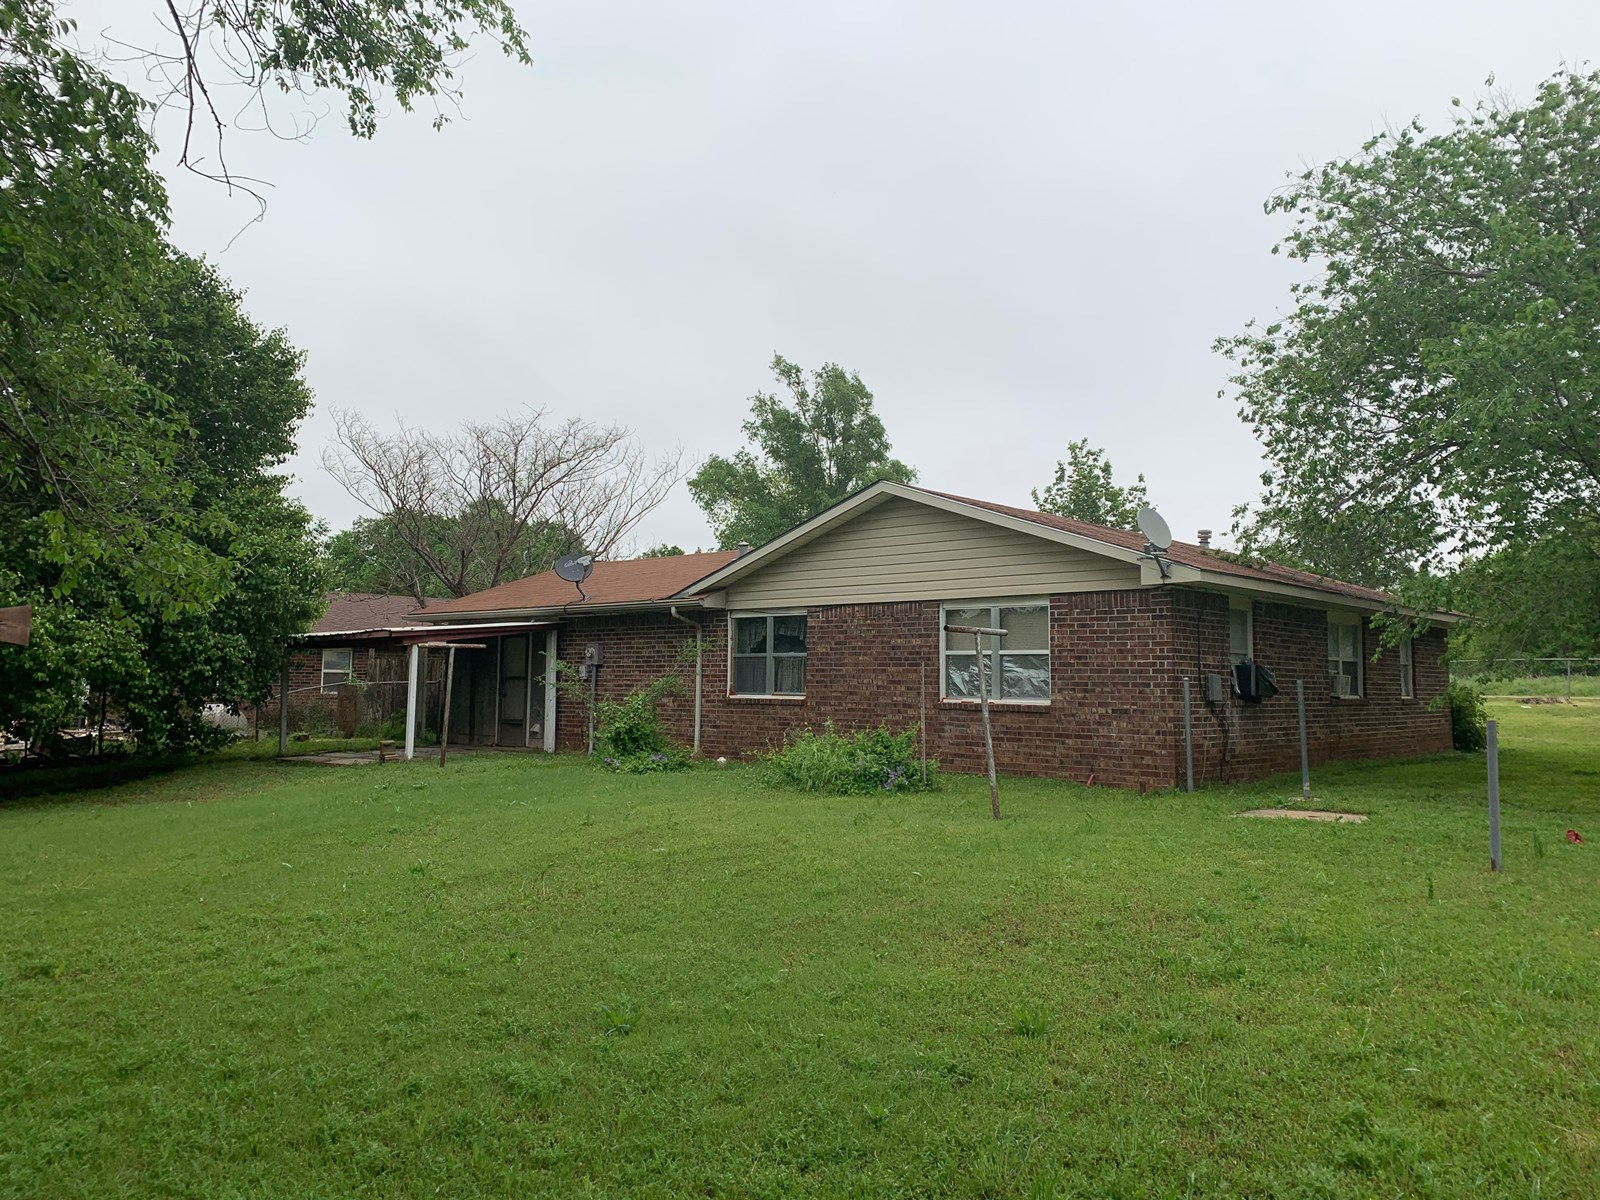 North Central Oklahoma, Marland Rural Home for Sale